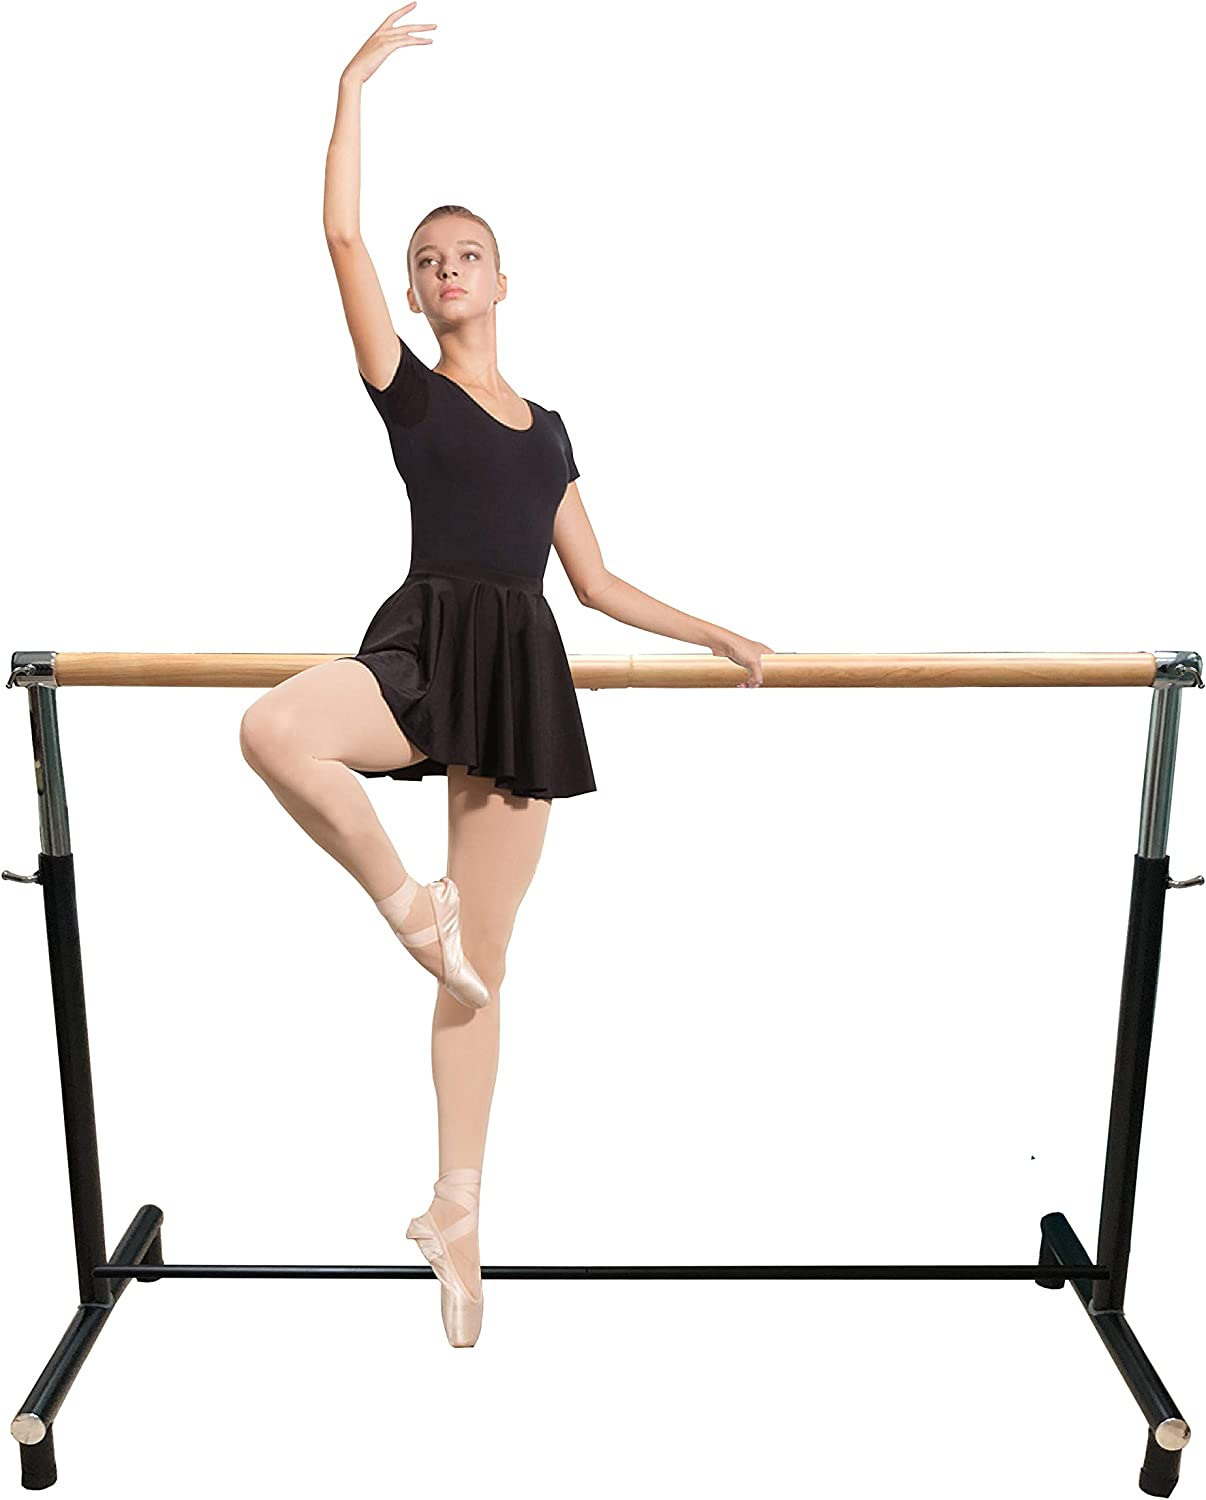 Image of Ballet Equipment Ballet Barre Portable for Home or Studio, Freestanding Adjustable Bar for Stretch, Balance, Pilates, Dance or Active Workouts, Well-Balanced with Non-Slip Fit, Kids and Adults